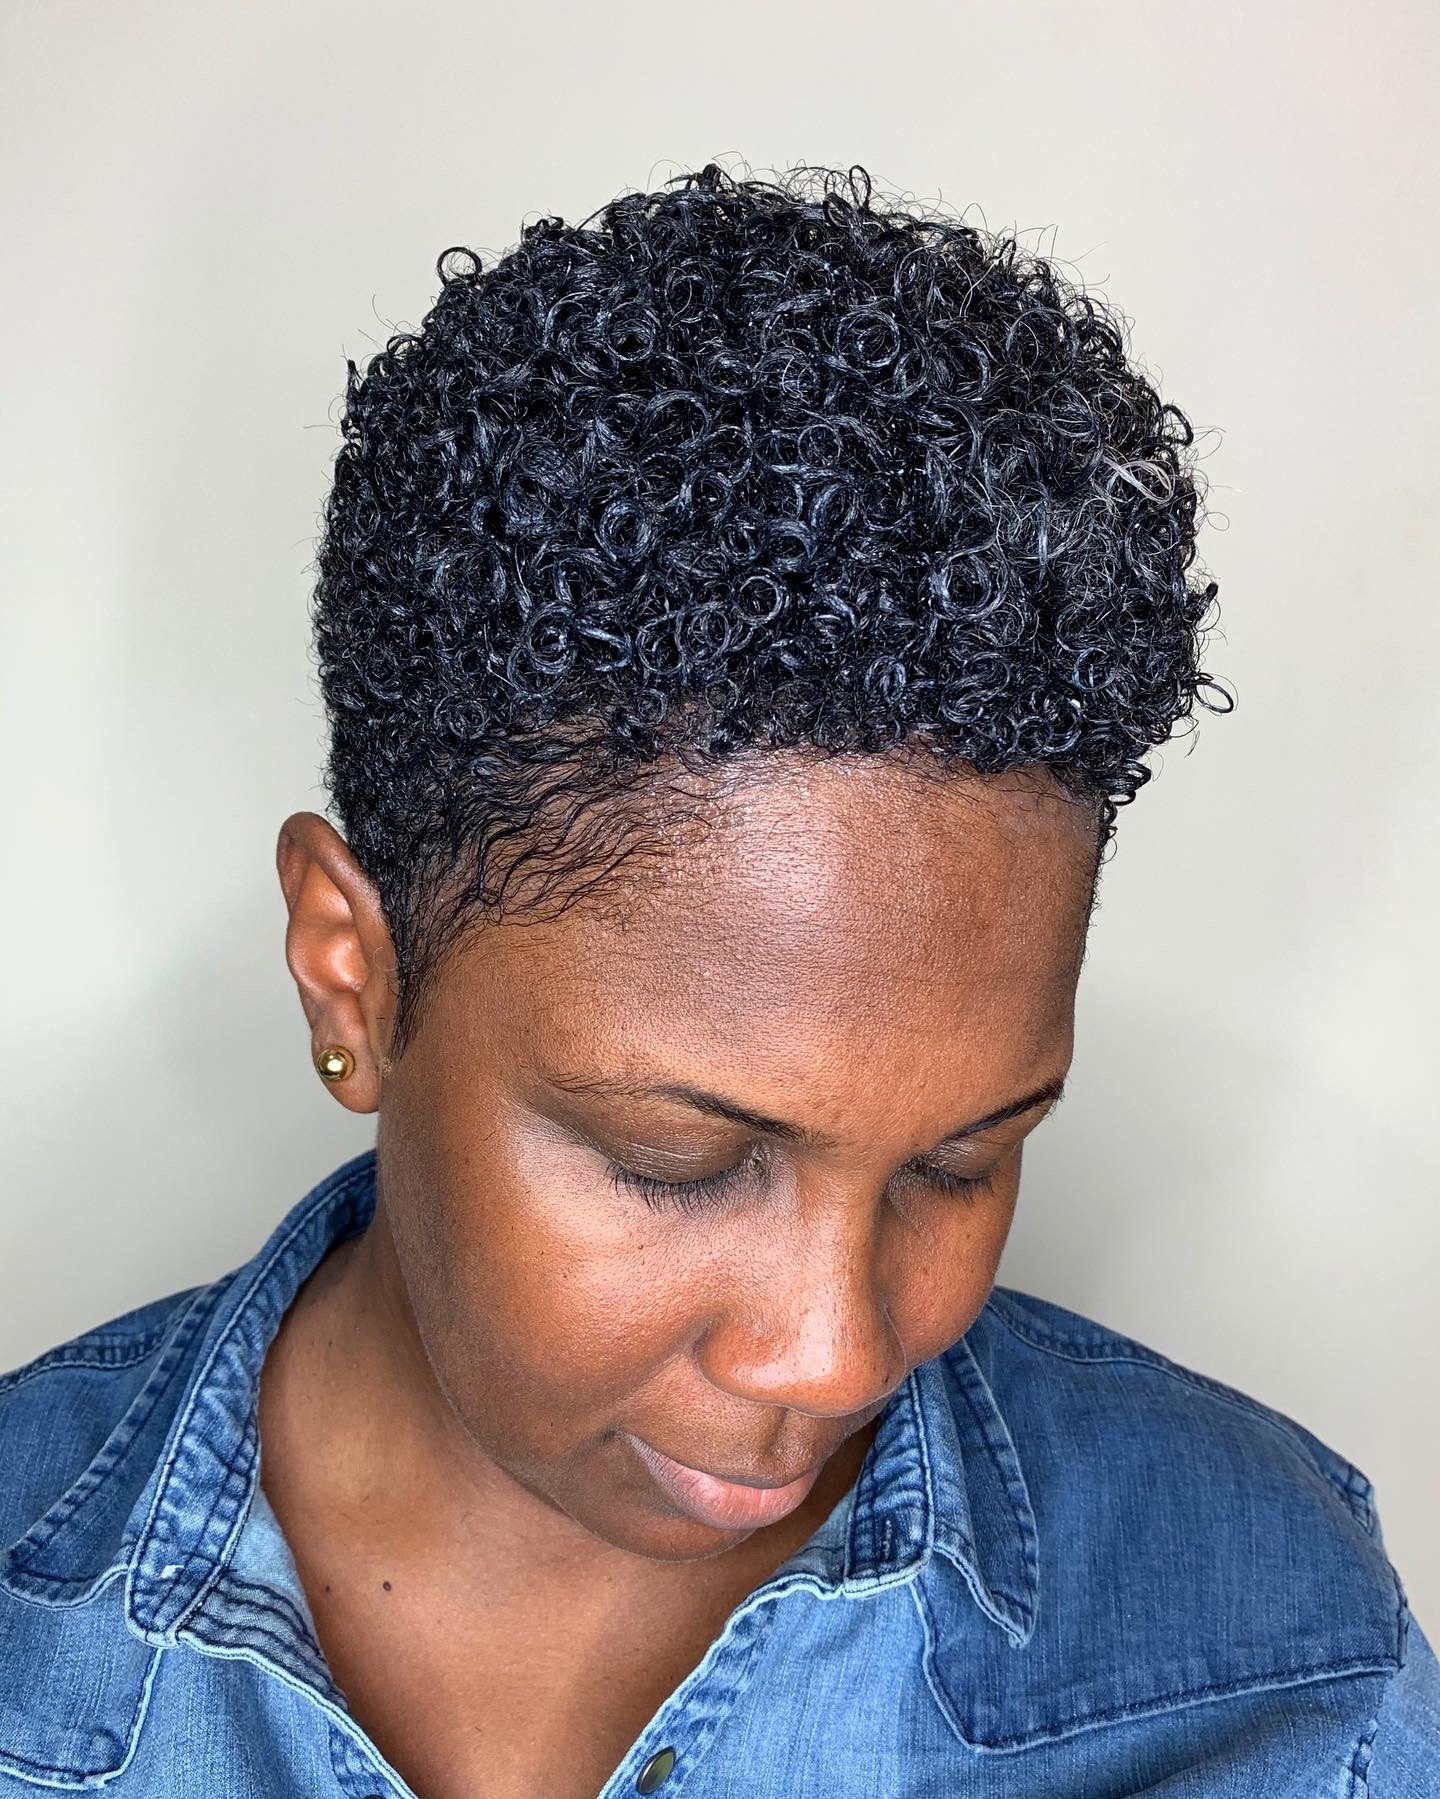 Type 3 Hair Mielle Organics Pomegranate & Honey Collection